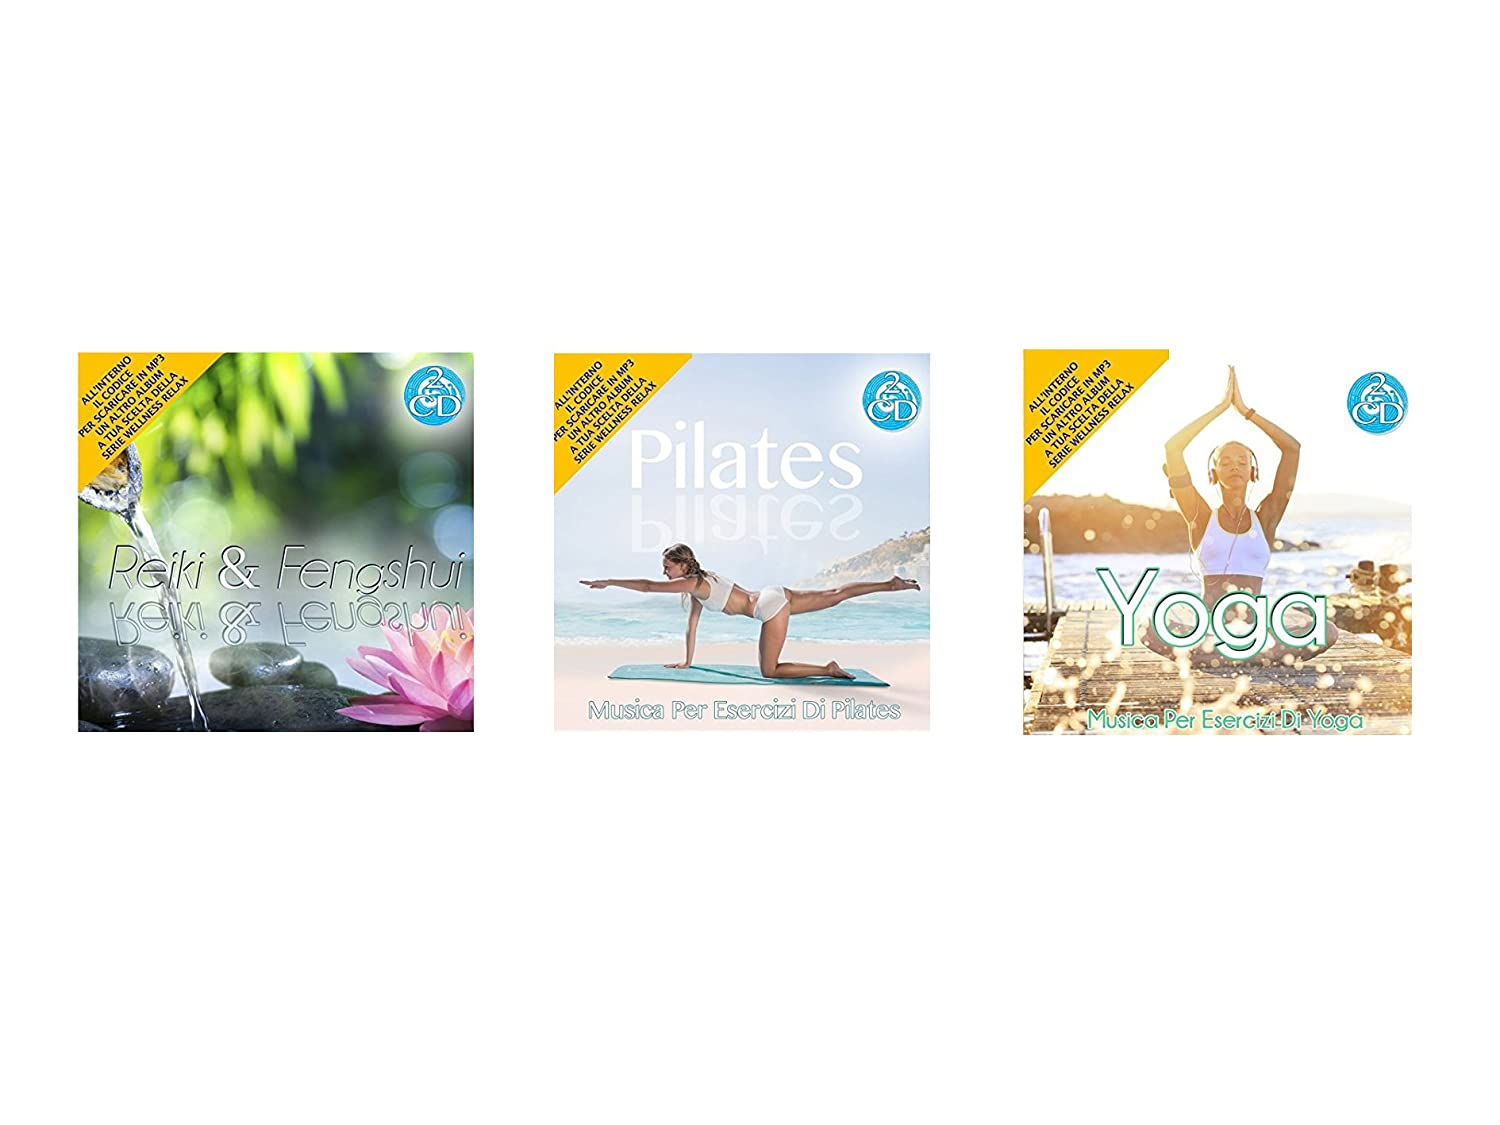 Oferta especial 3 Cd Doppio Della Serie Wellness Relax, Reiki e Feng Shui, Pilates, Yoga Musica Rilassante Special offer Series Wellness Reiki and ...